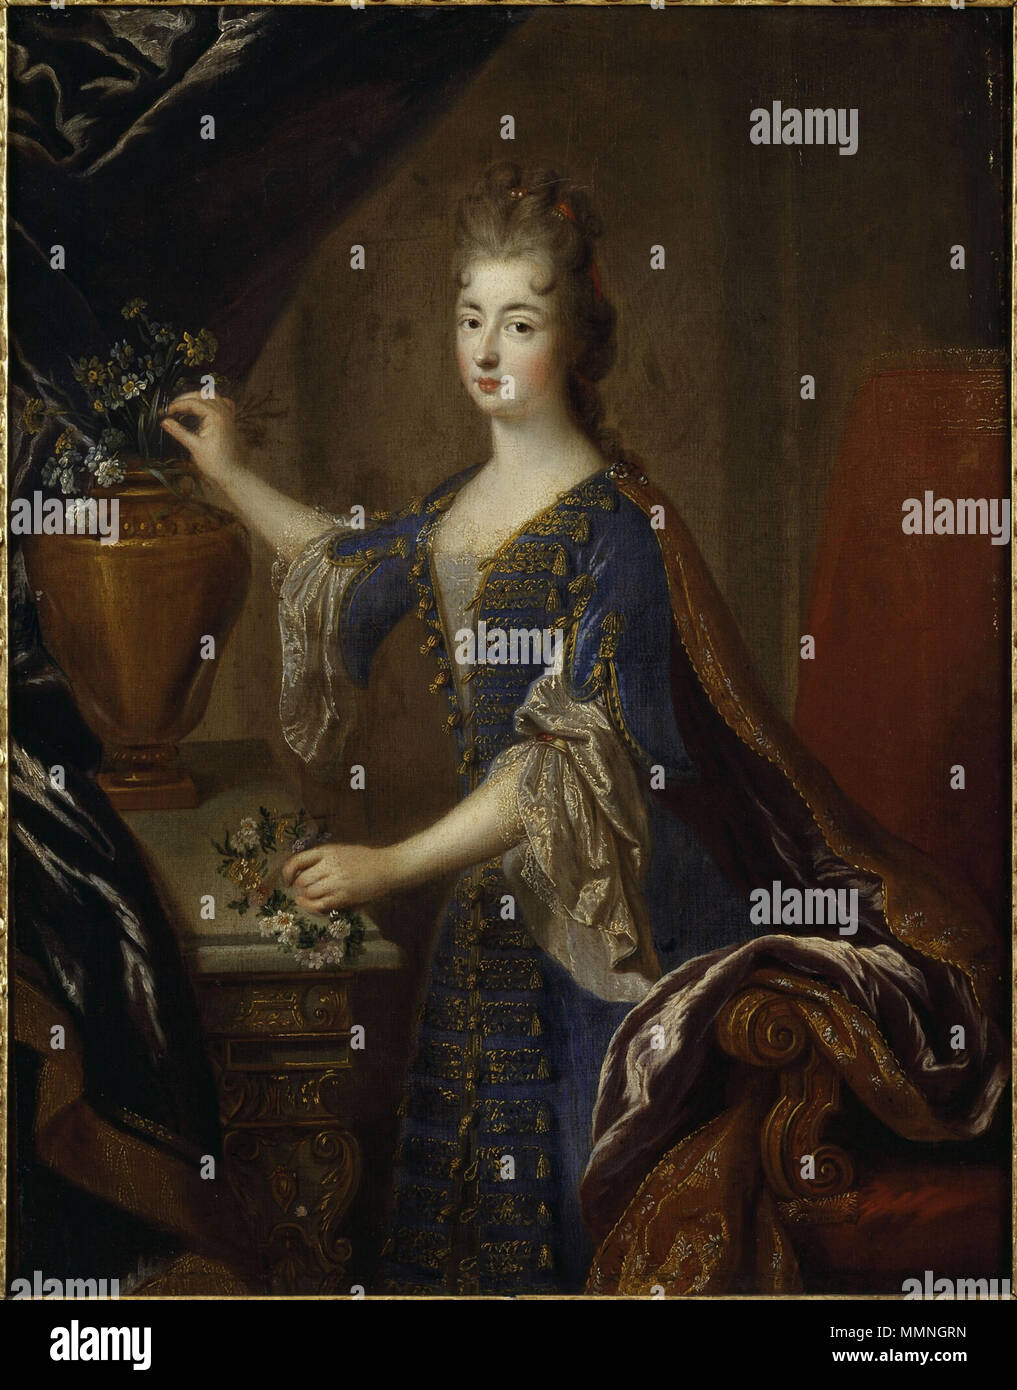 Full portrait of Marie Anne de Bourbon (1666-1739) by François de Troy